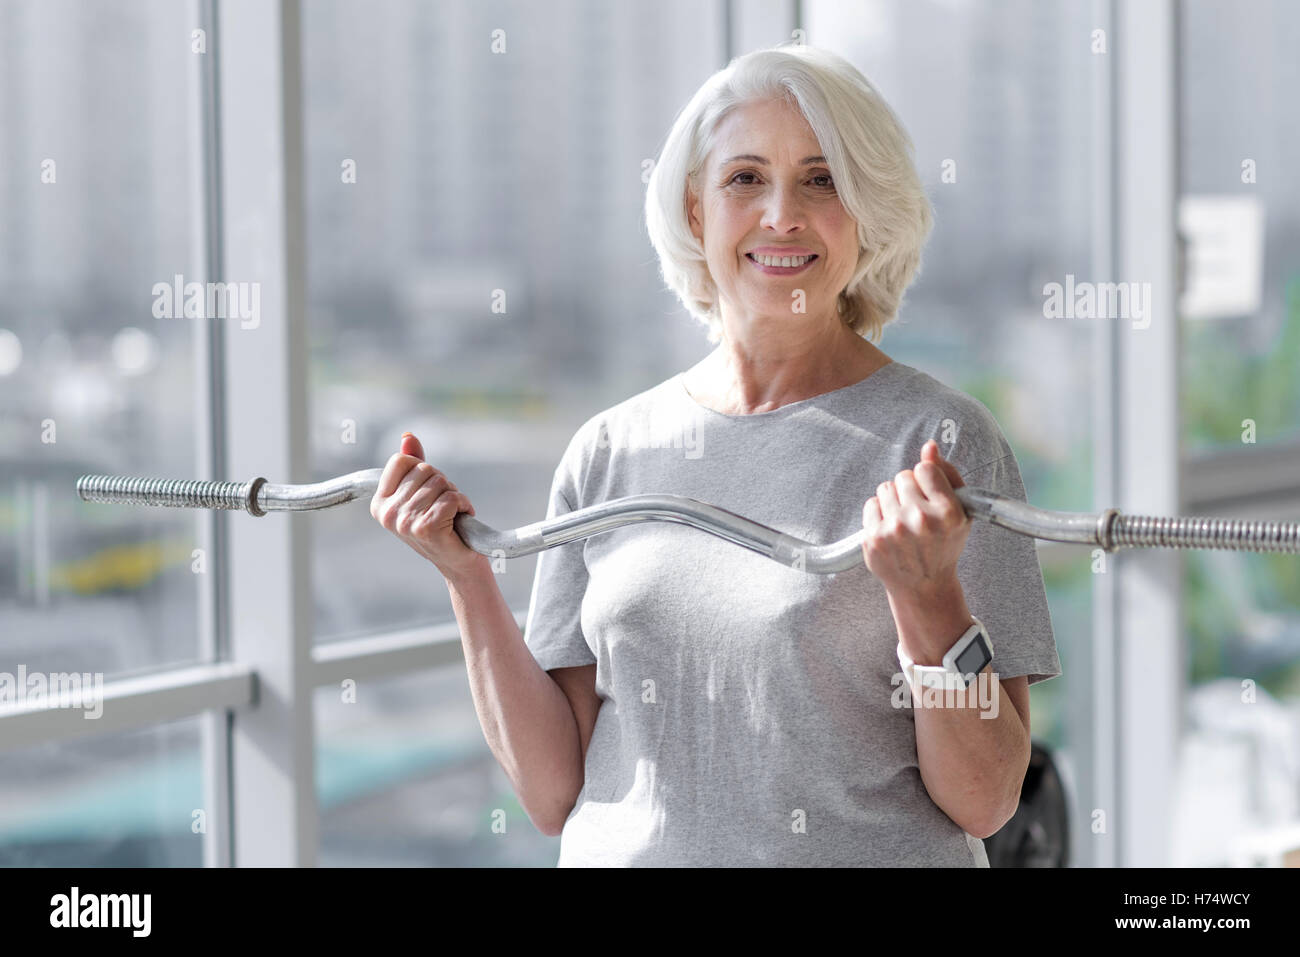 Smiling pretty woman exercising with easy bar. - Stock Image